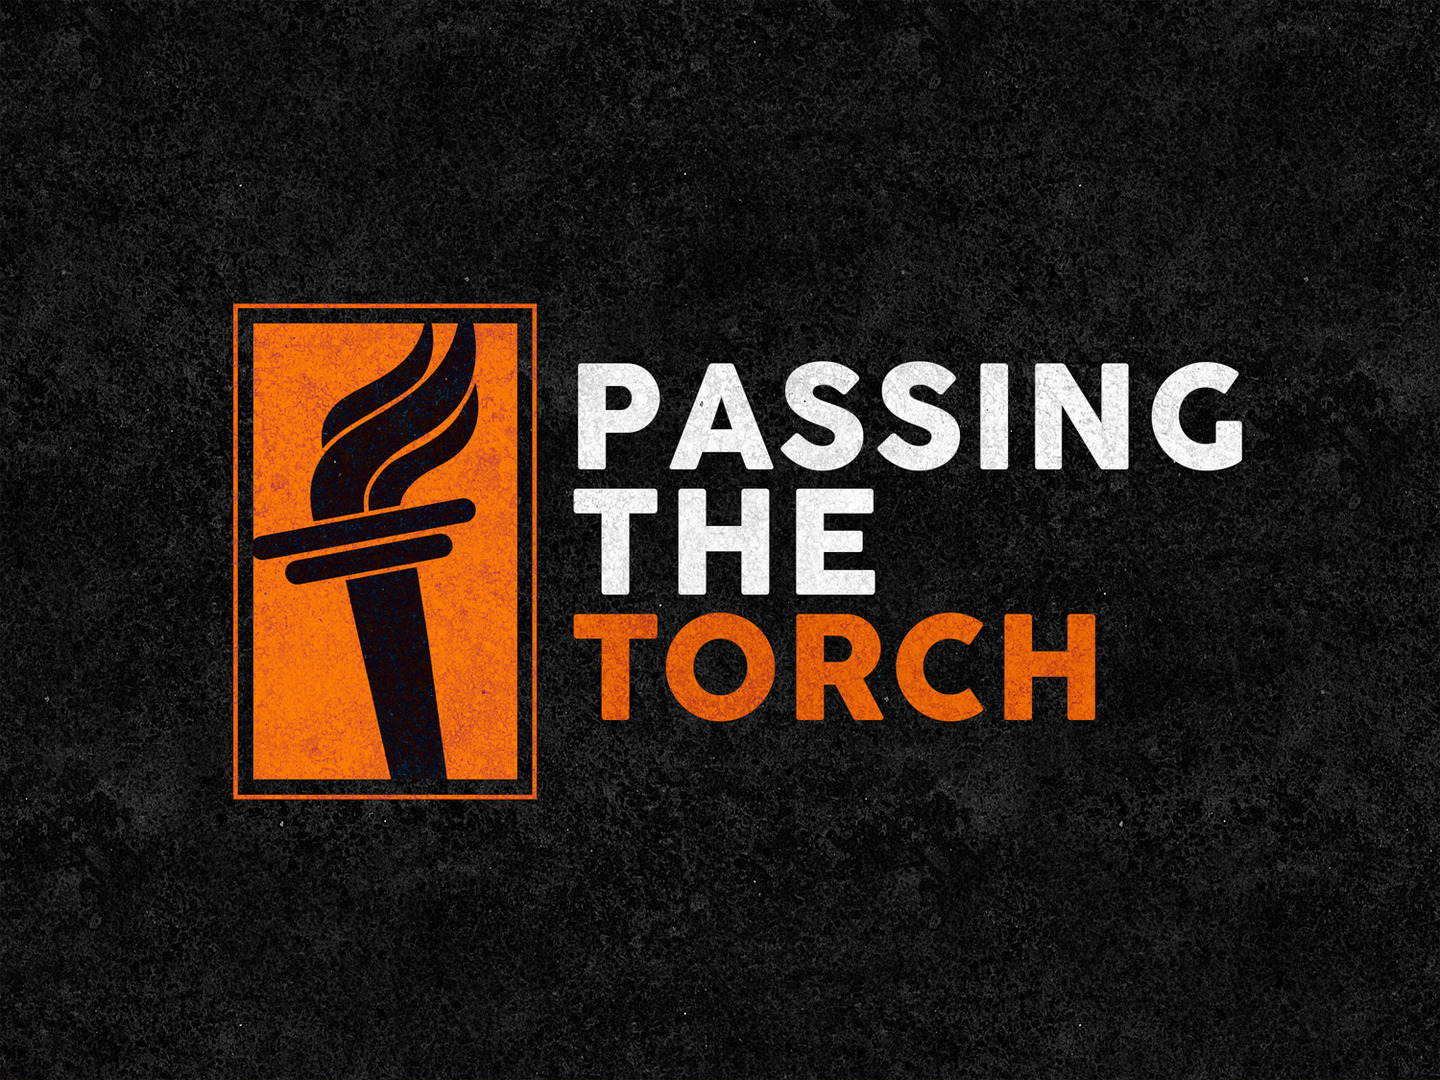 passing_the_torch-title-2-still-4x3